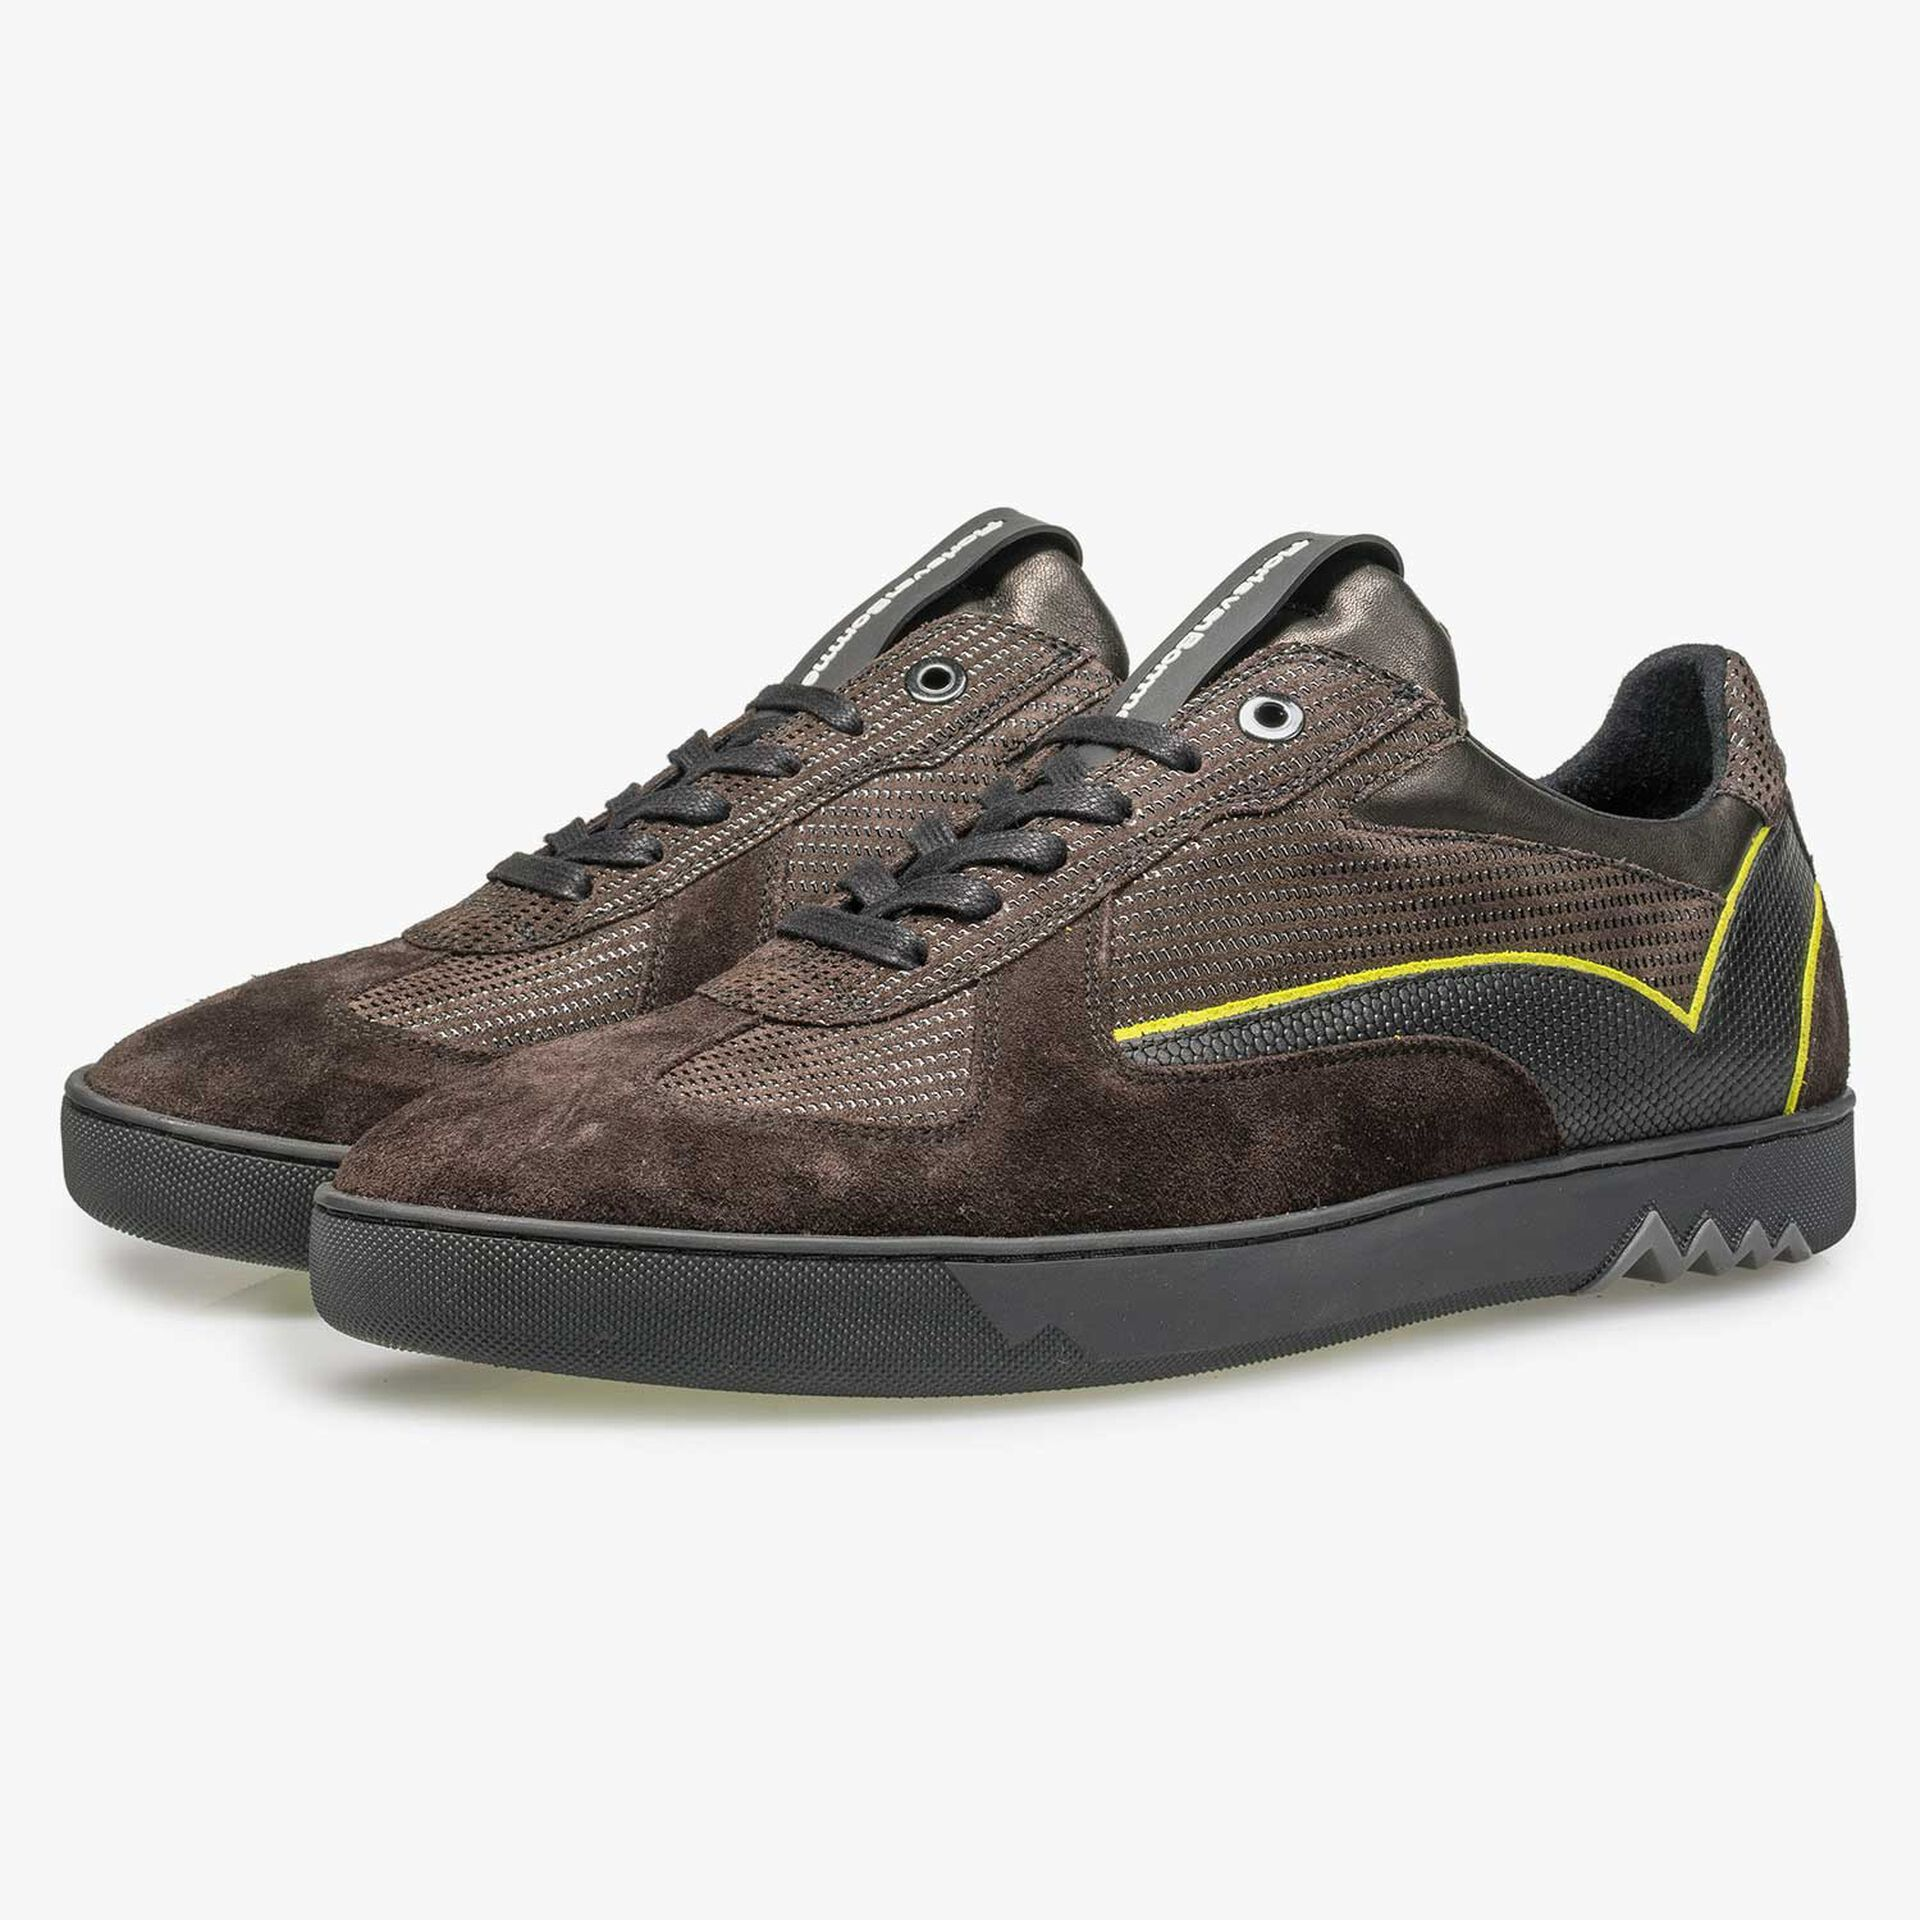 Dark brown suede sneaker with pattern